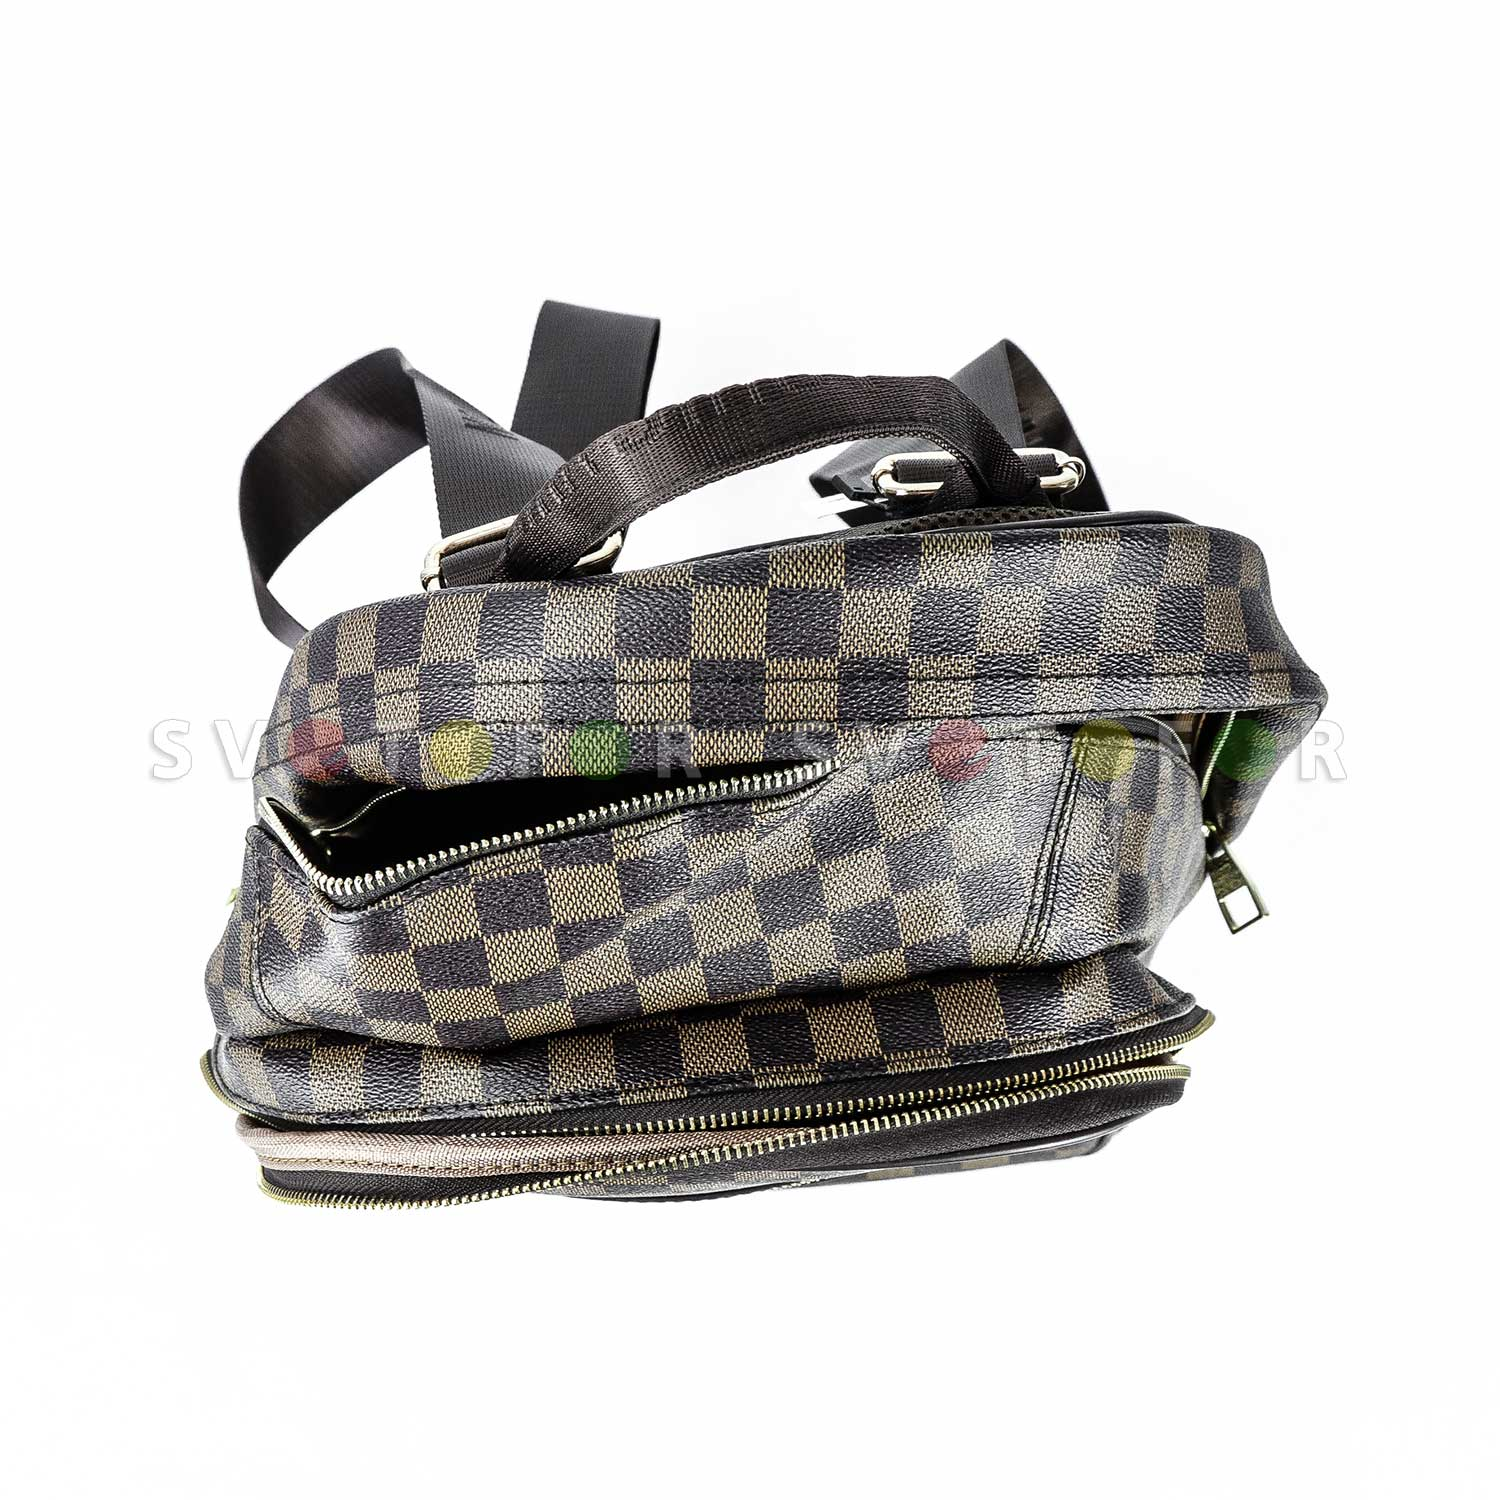 Рюкзак Louis Vuitton 8144 коричневый